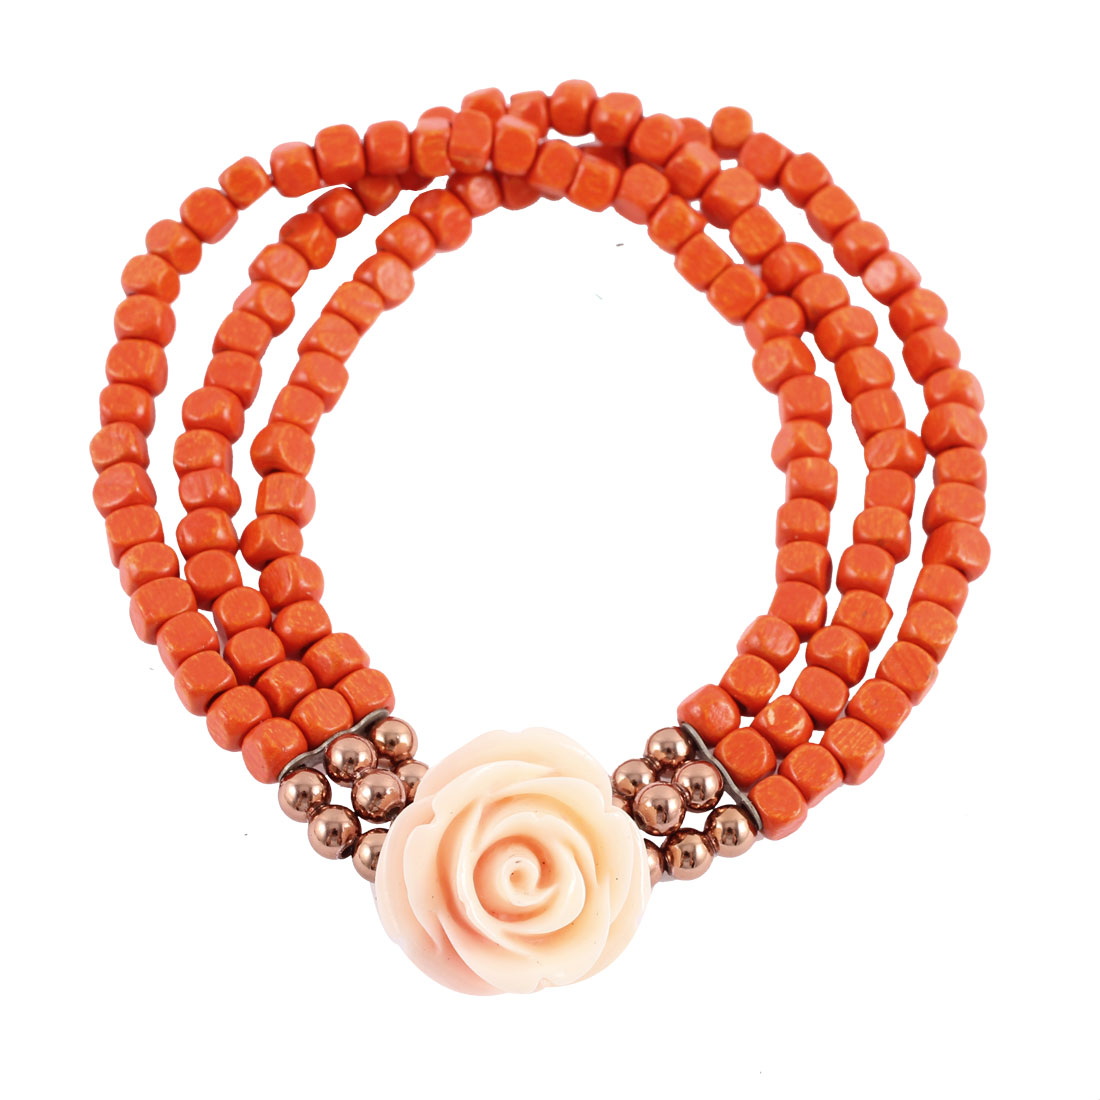 Flower Pendant Beads Detail Multilayer Elastic Wrist Bracelet Bangle Orange